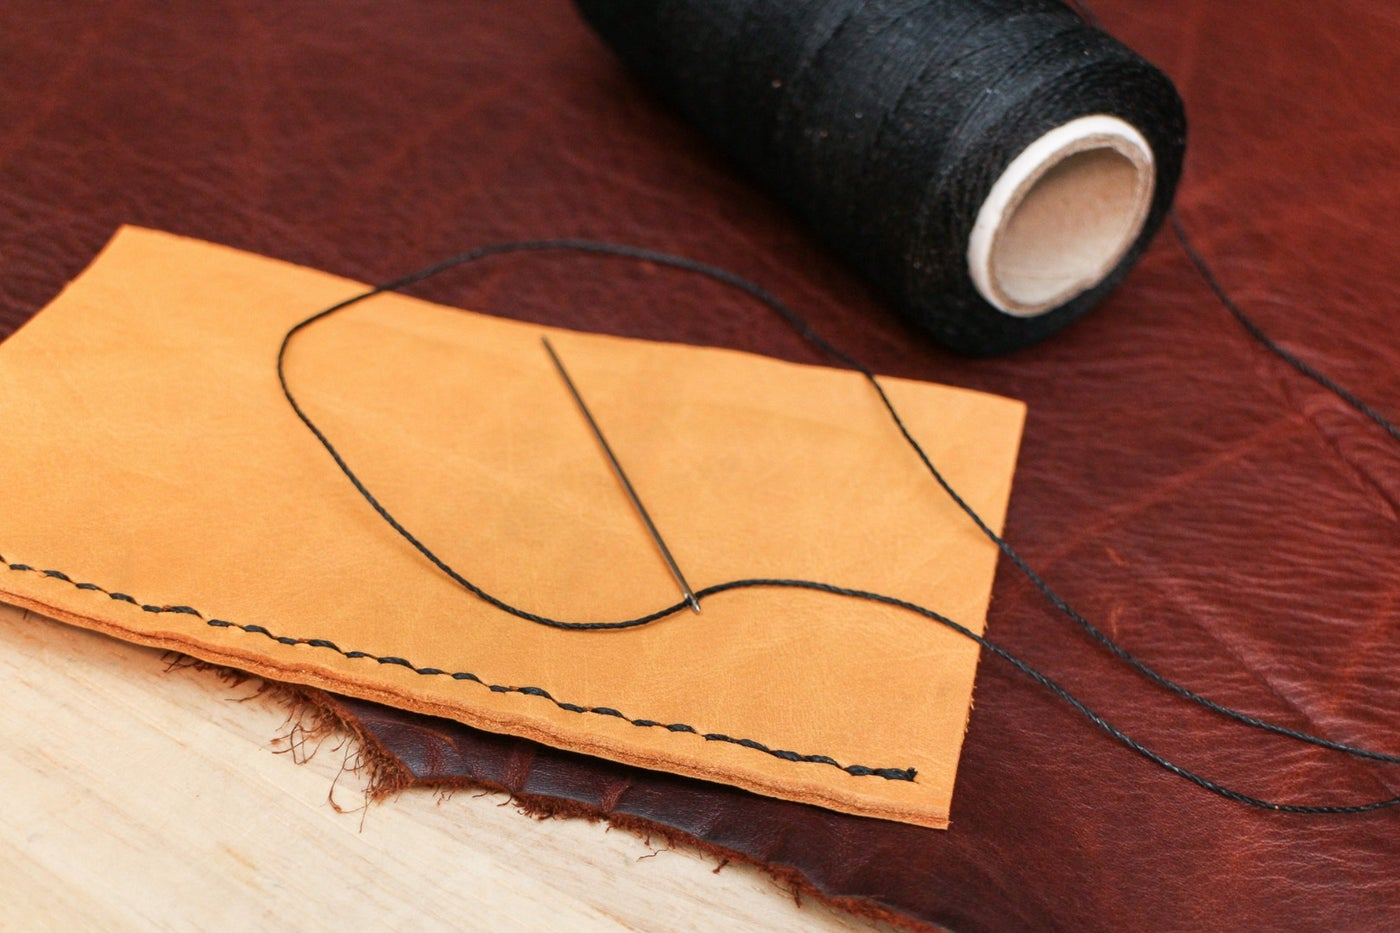 Saddle Stitching With One Needle